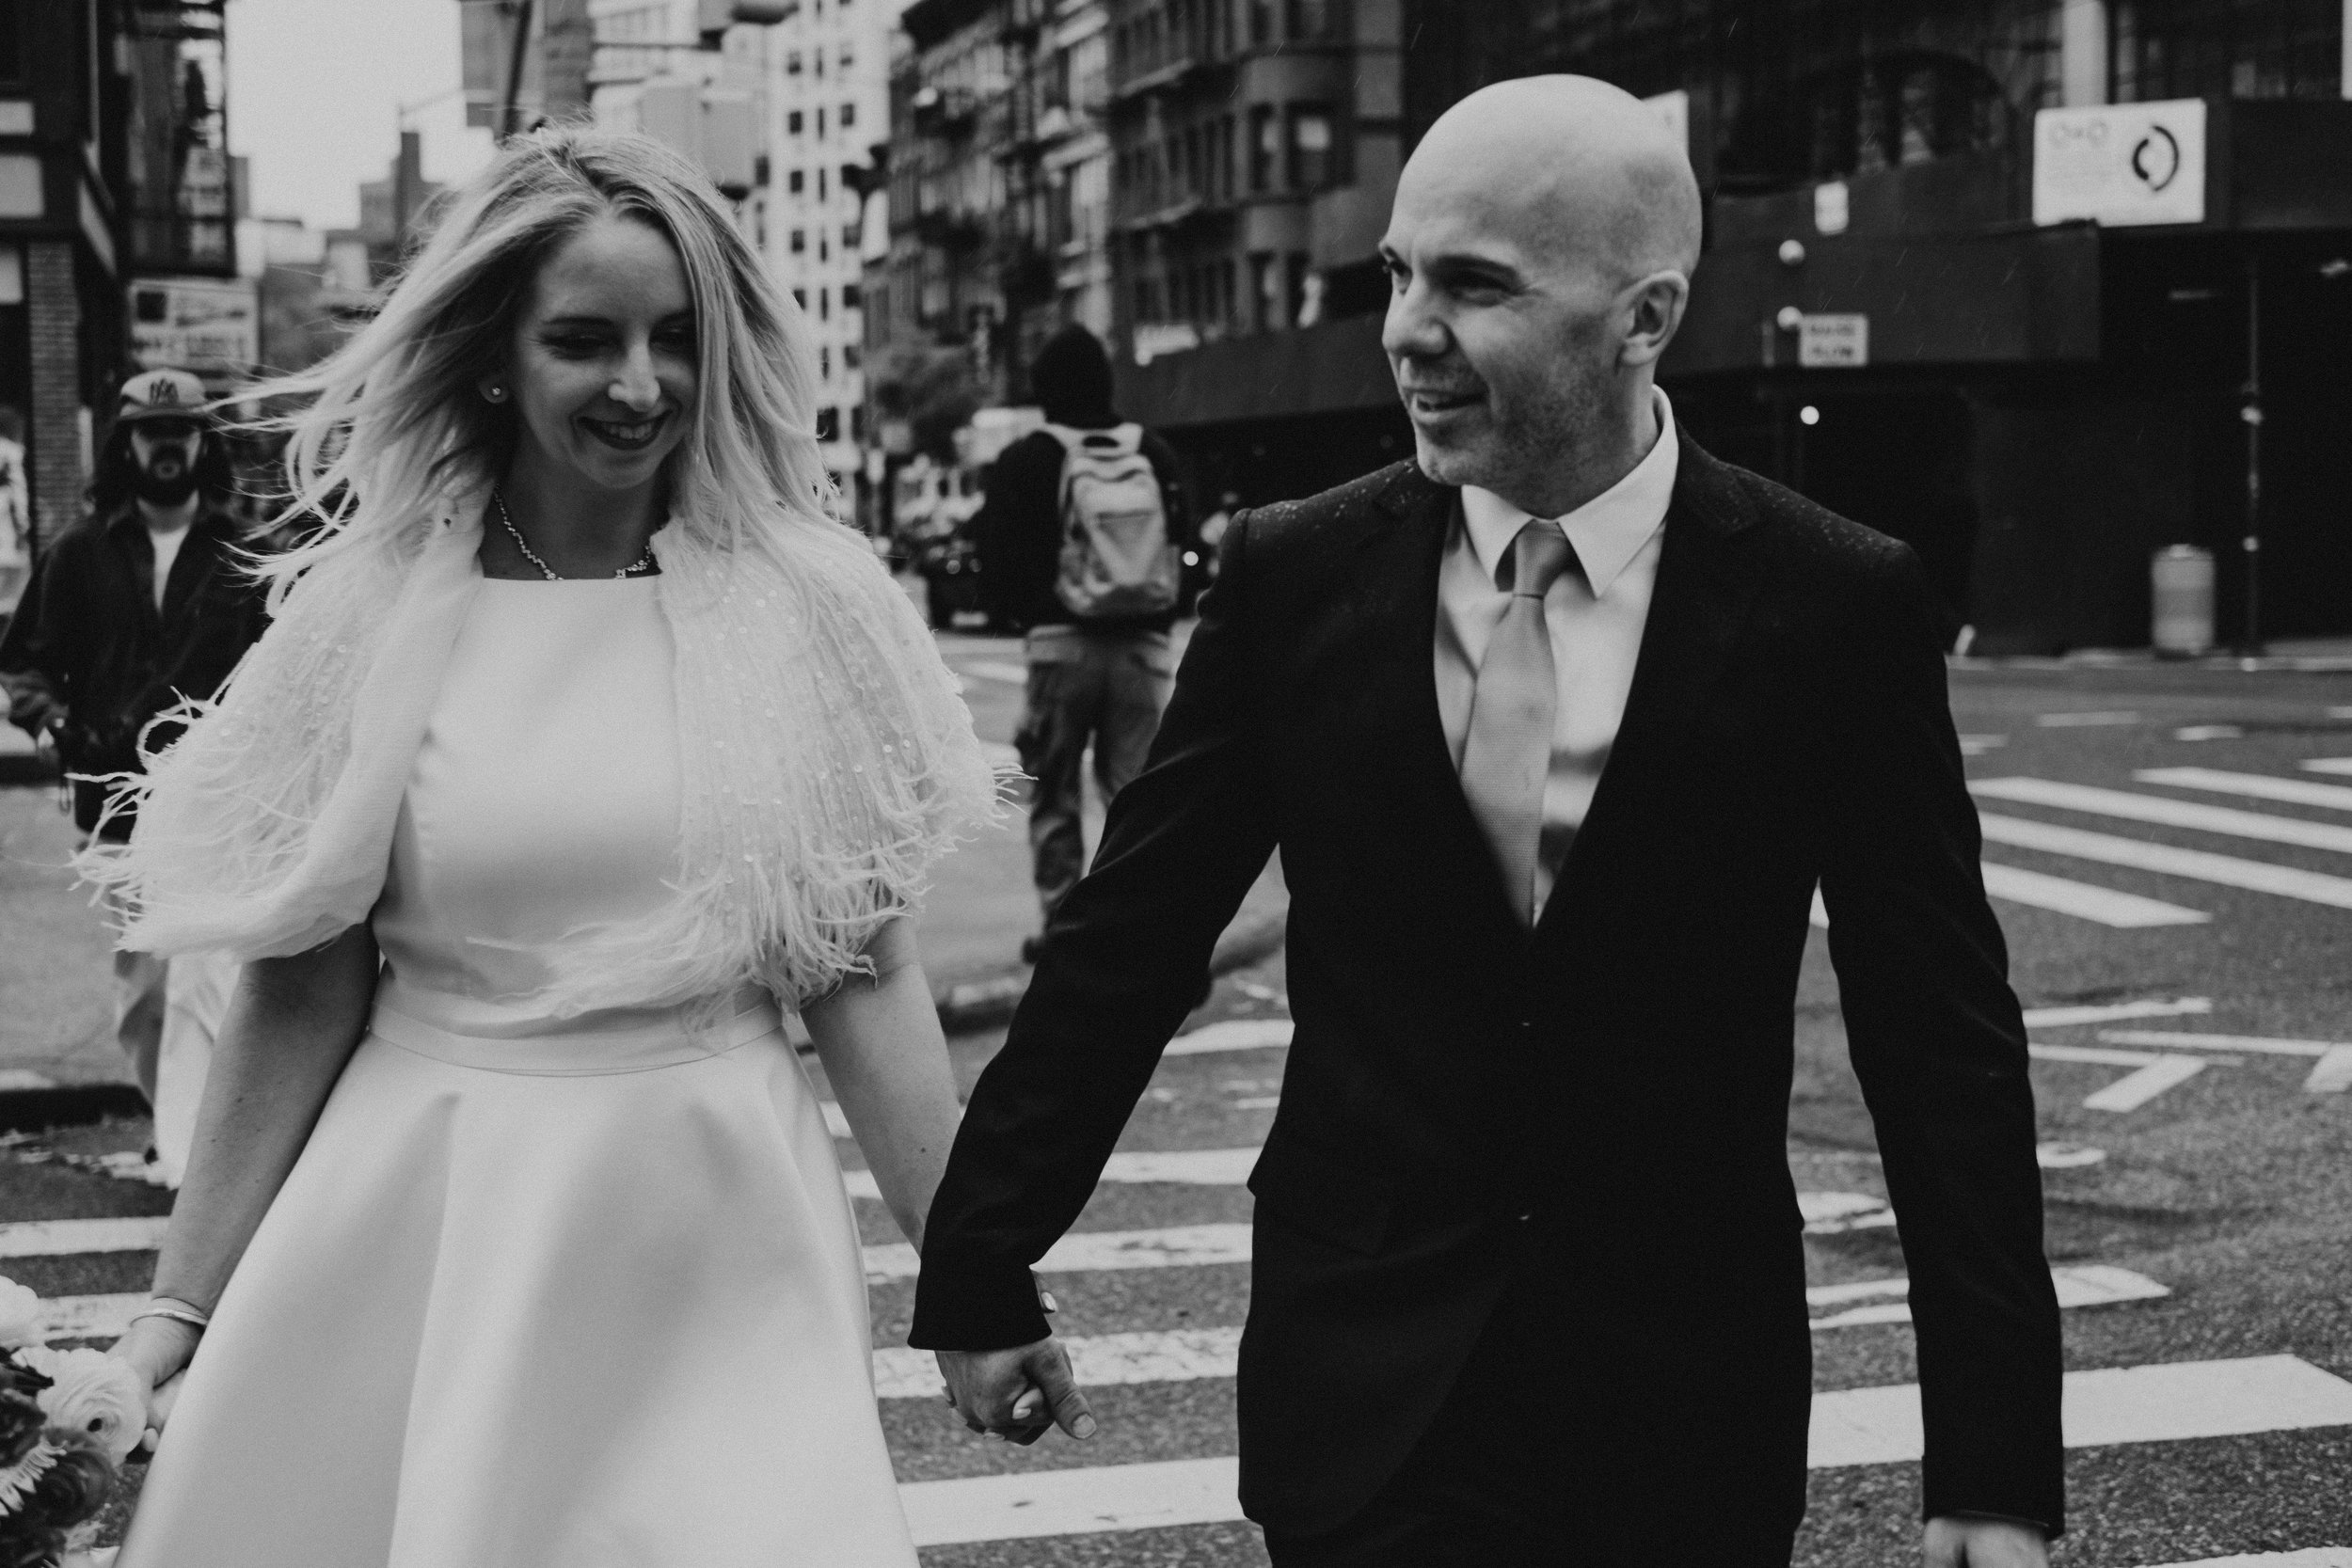 Brooklyn_City_Hall_Elopement_Photographer_Chellise_Michael_Photography256.JPG